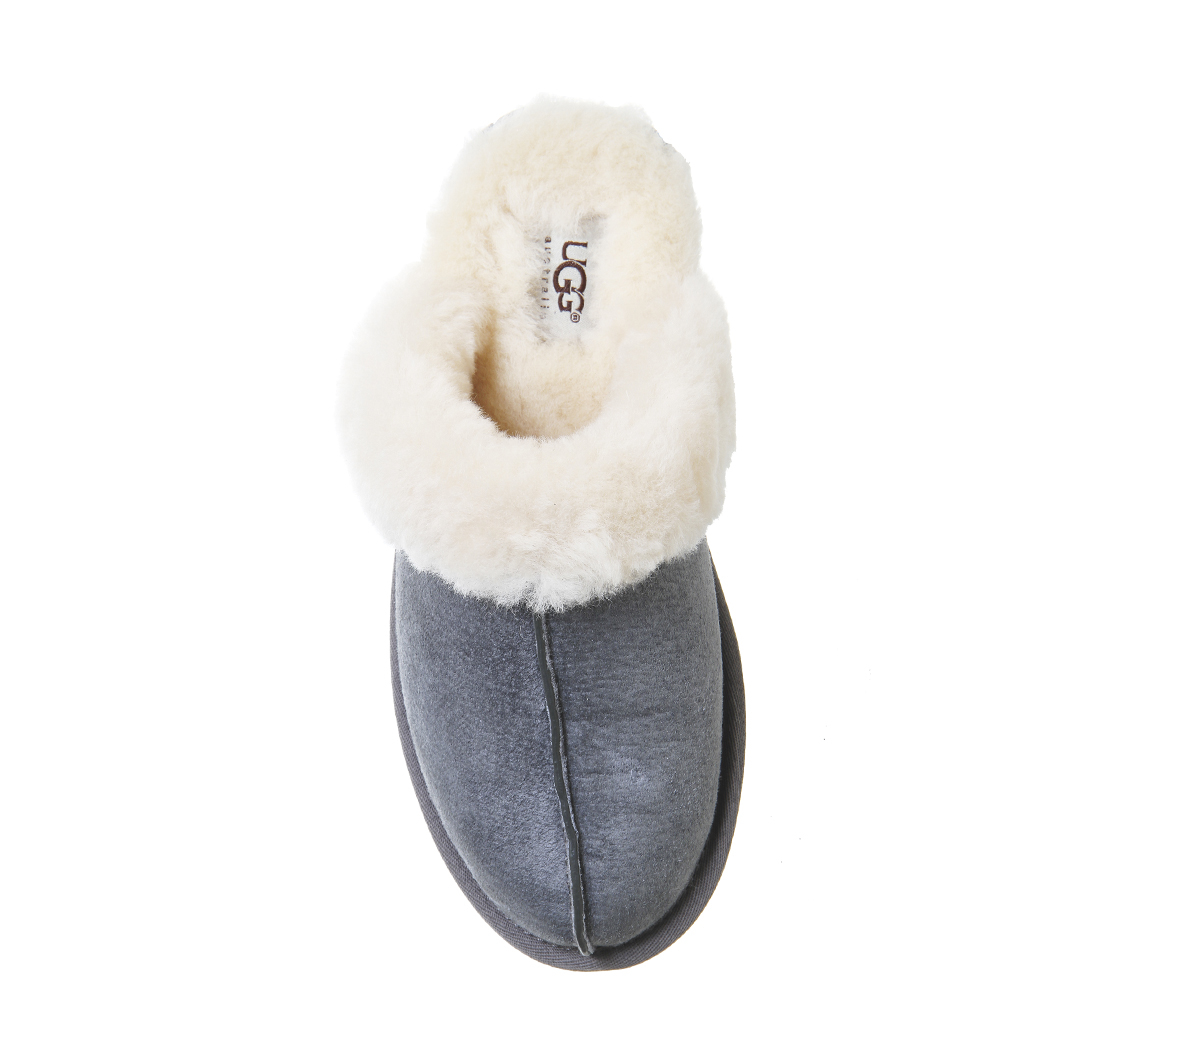 ugg scuffette ii slippers grey